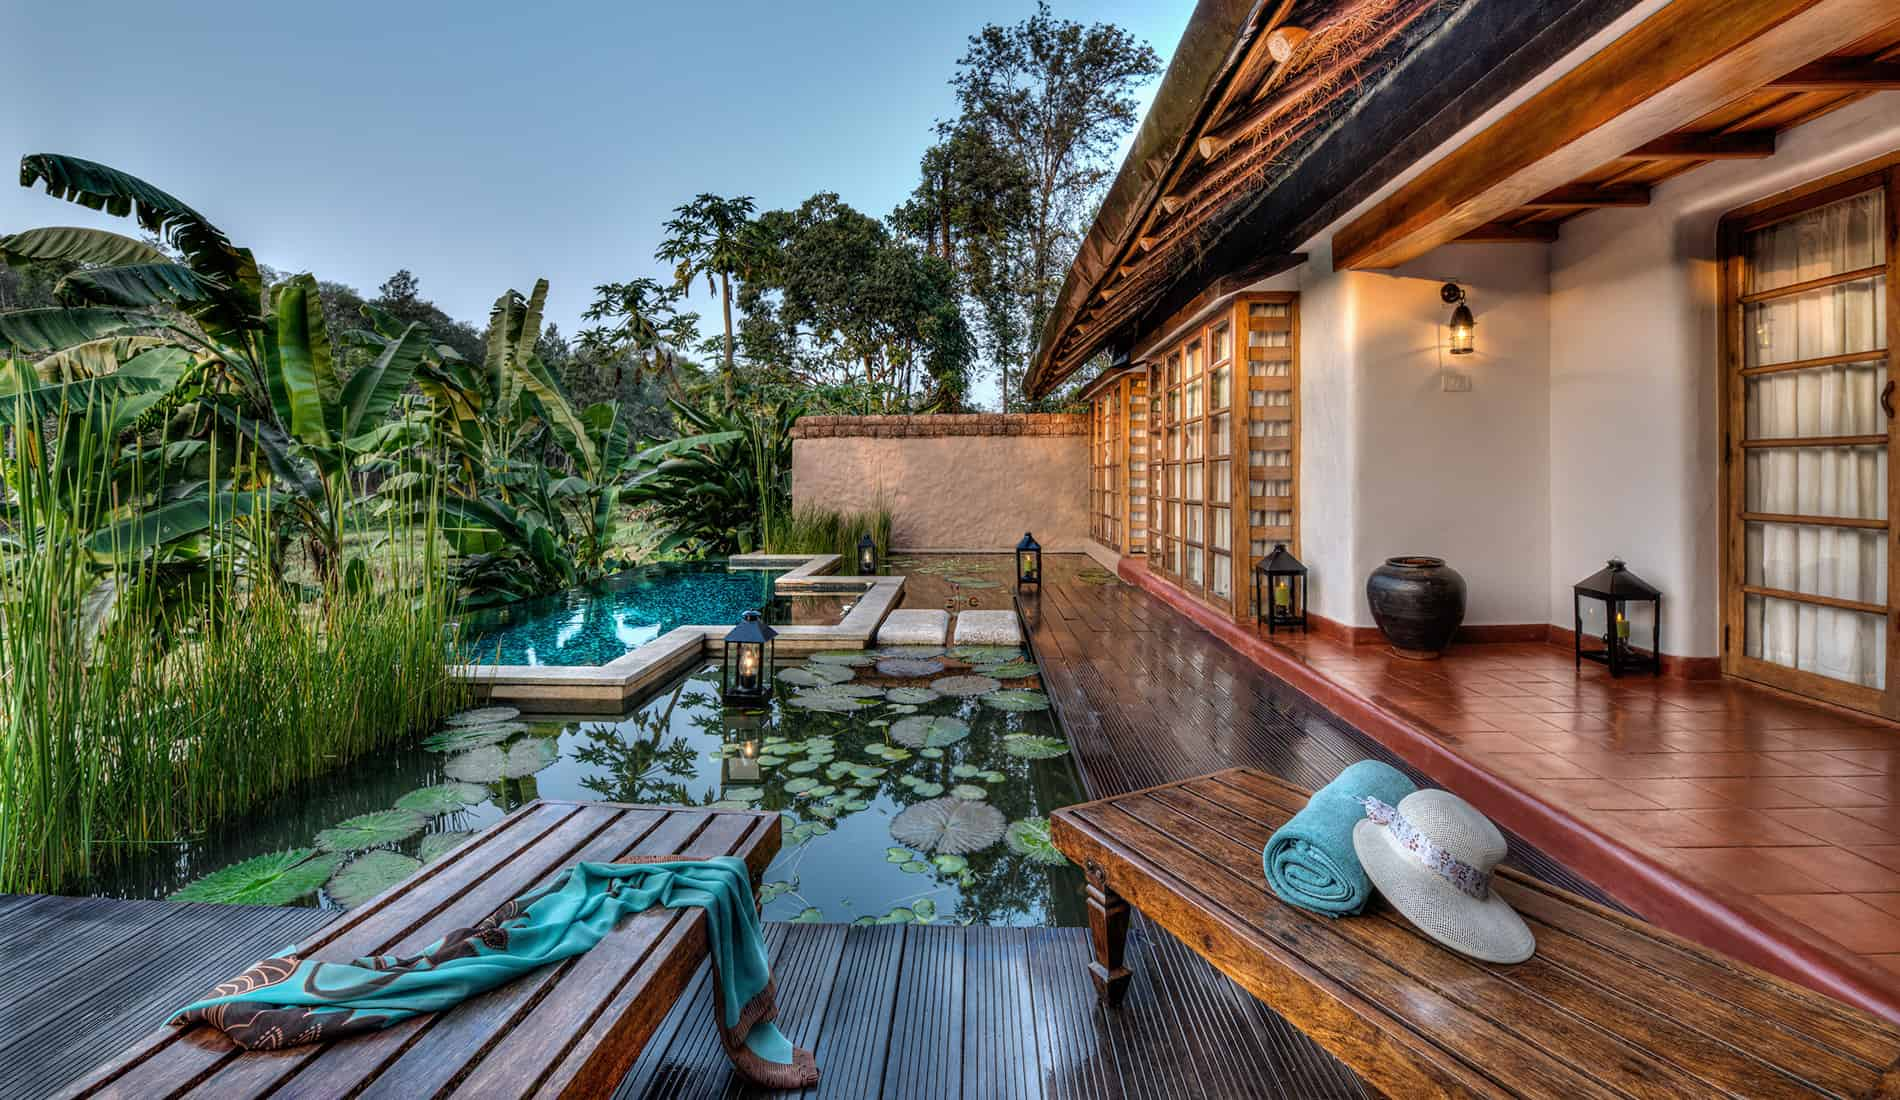 honeymoon destination in coorg: villa and cottages with private pool